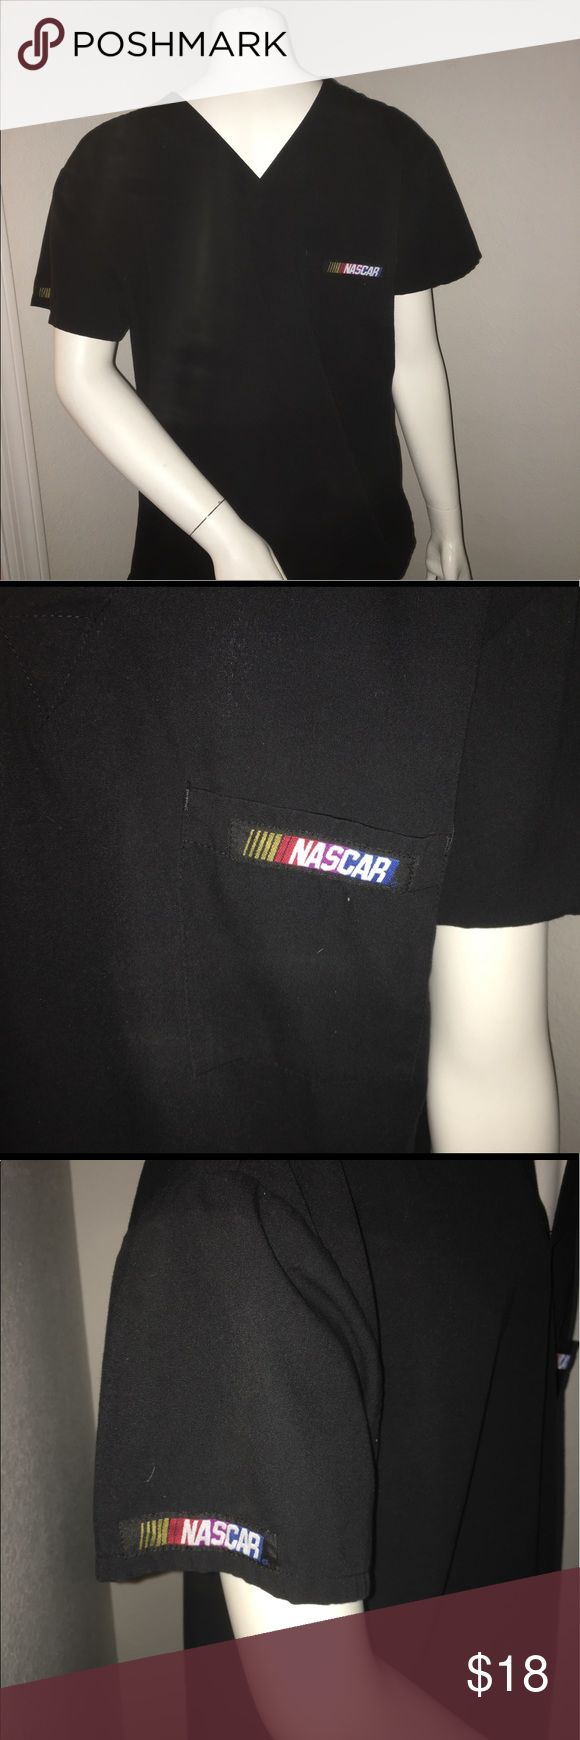 """Unisex medical dental nascar scrub top sz: Xs Thank you for viewing my listing, for sale is a unisex, men/women, blacks, short sleeve, NASCAR brand, medical/dental, scrub top/shirt.  Sz: XS  Top is in great condition with no rips or stains. If you have any questions or would like additional photos please feel free to ask.  From under one arm to under the other measures appx 21"""" from the top of the shoulder to the bottom of the shirt measures 27"""" nascar Shirts Tees - Short Sleeve"""